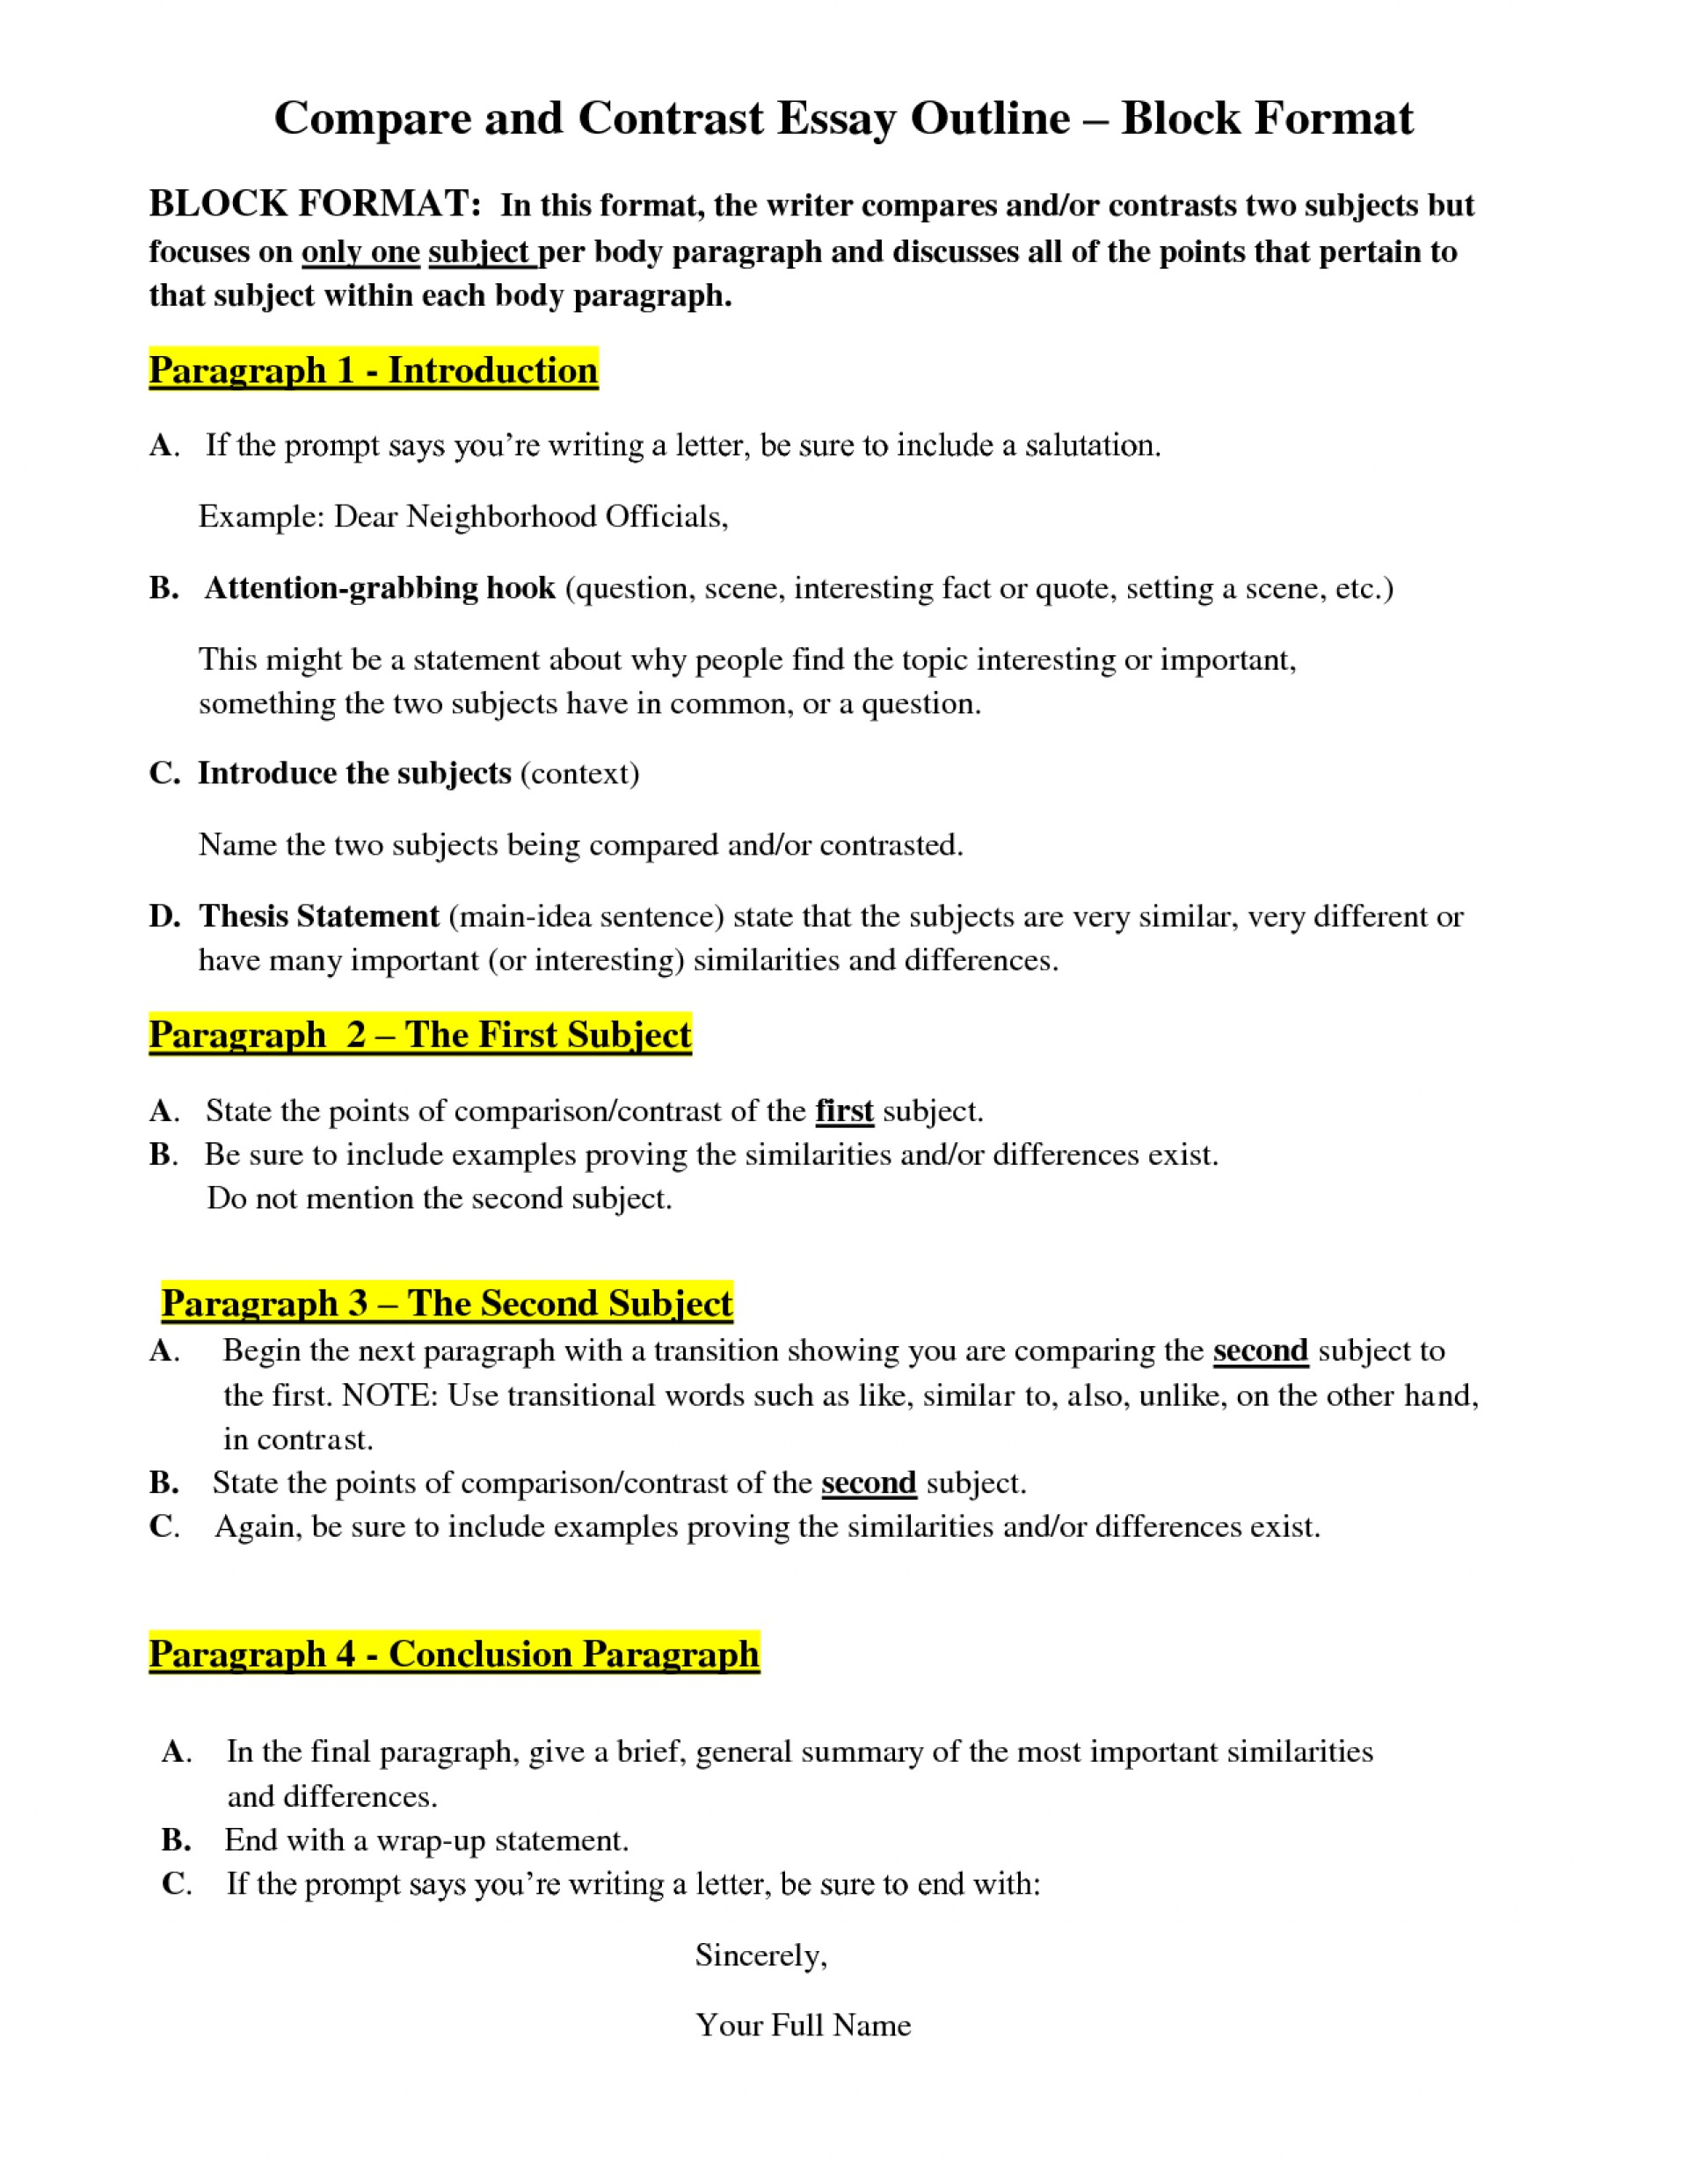 005 Compare And Contrast Essay Outline Block Format Example Prompt Fascinating Definition 1920